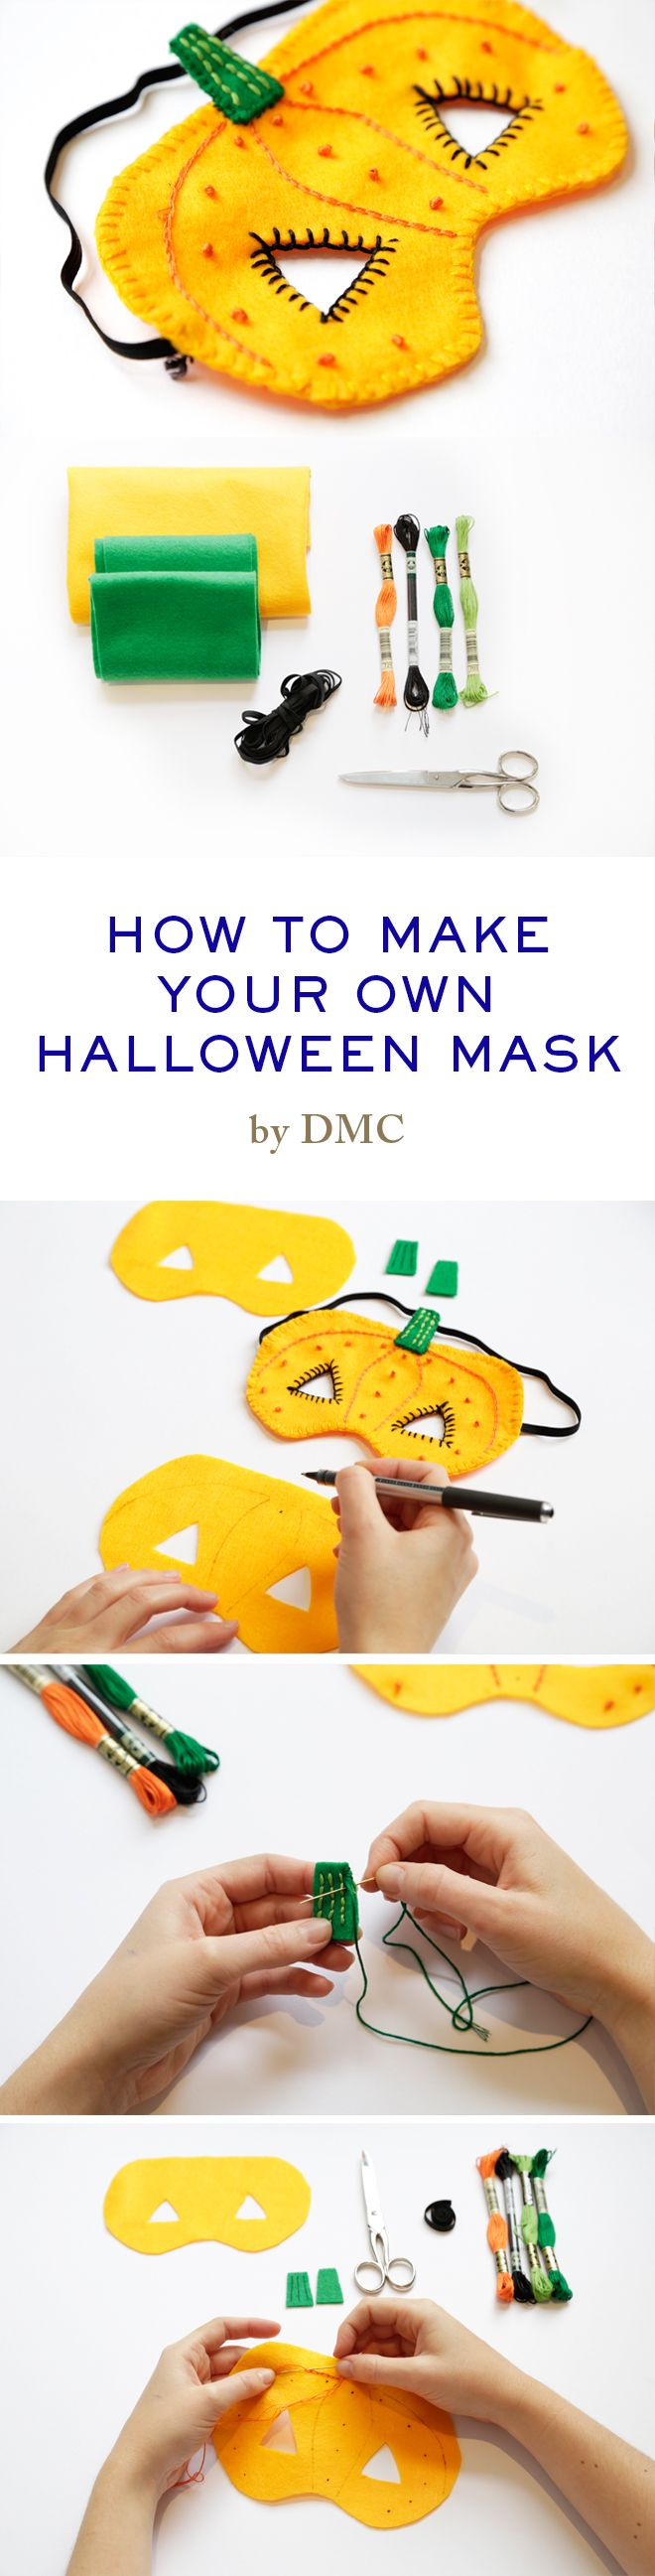 How to make your own Halloween mask. www.dmc.com